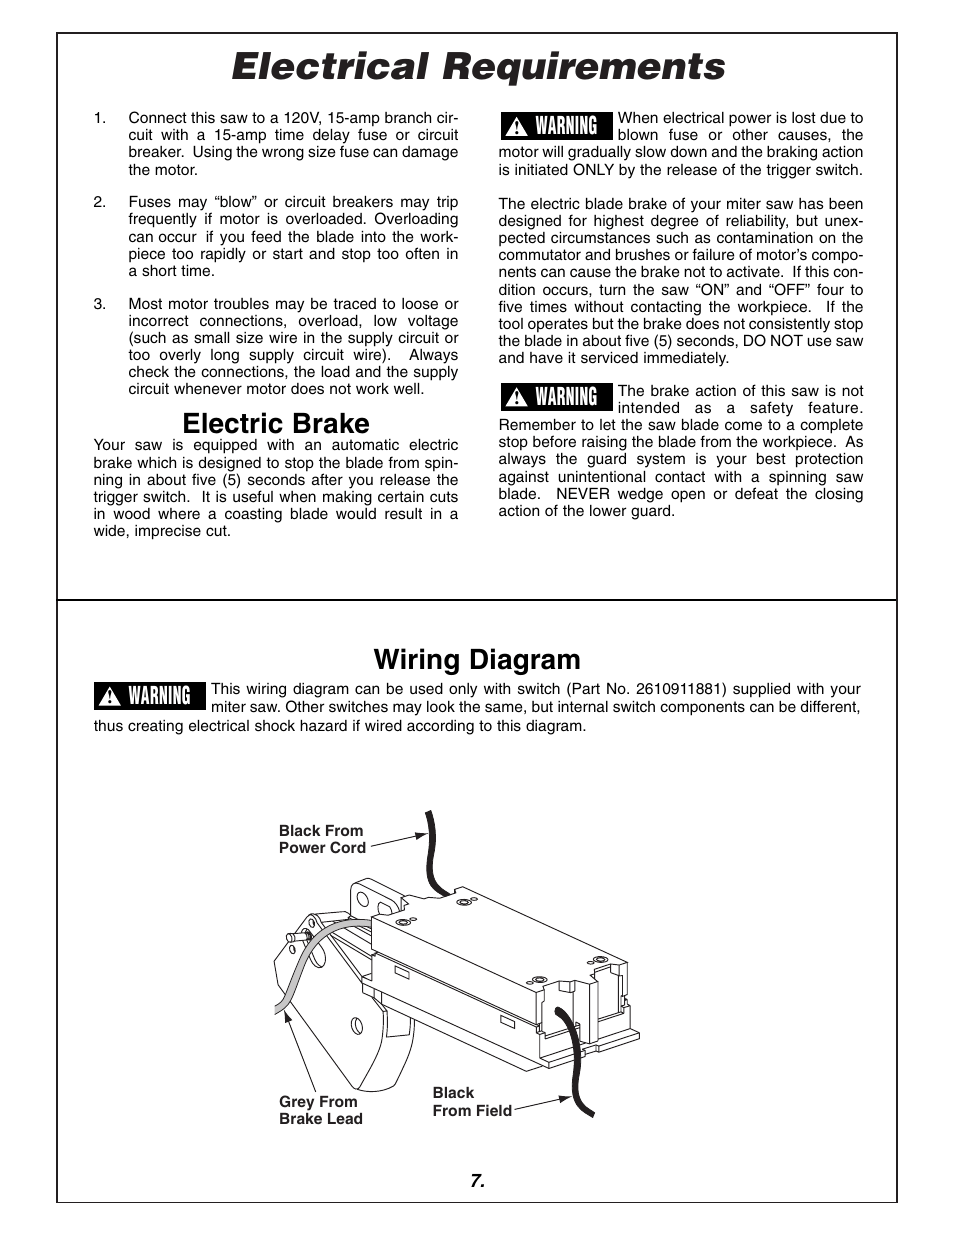 medium resolution of electrical requirements electric brake wiring diagram bosch 3915 user manual page 7 104